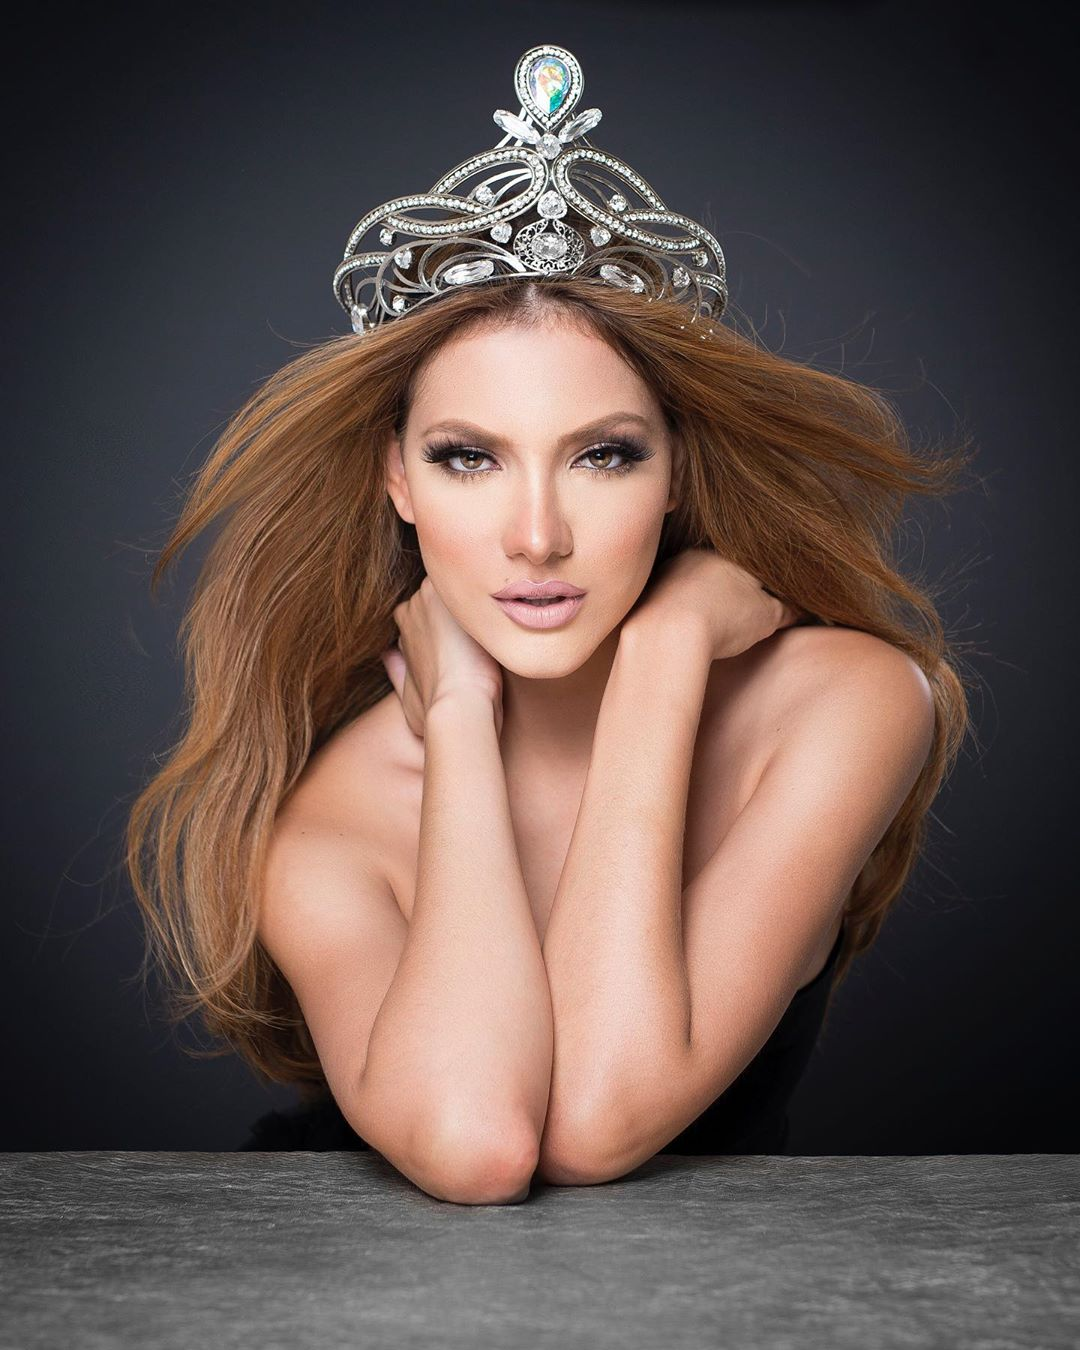 lourdes valentina figuera, miss grand international 2019. 71523310